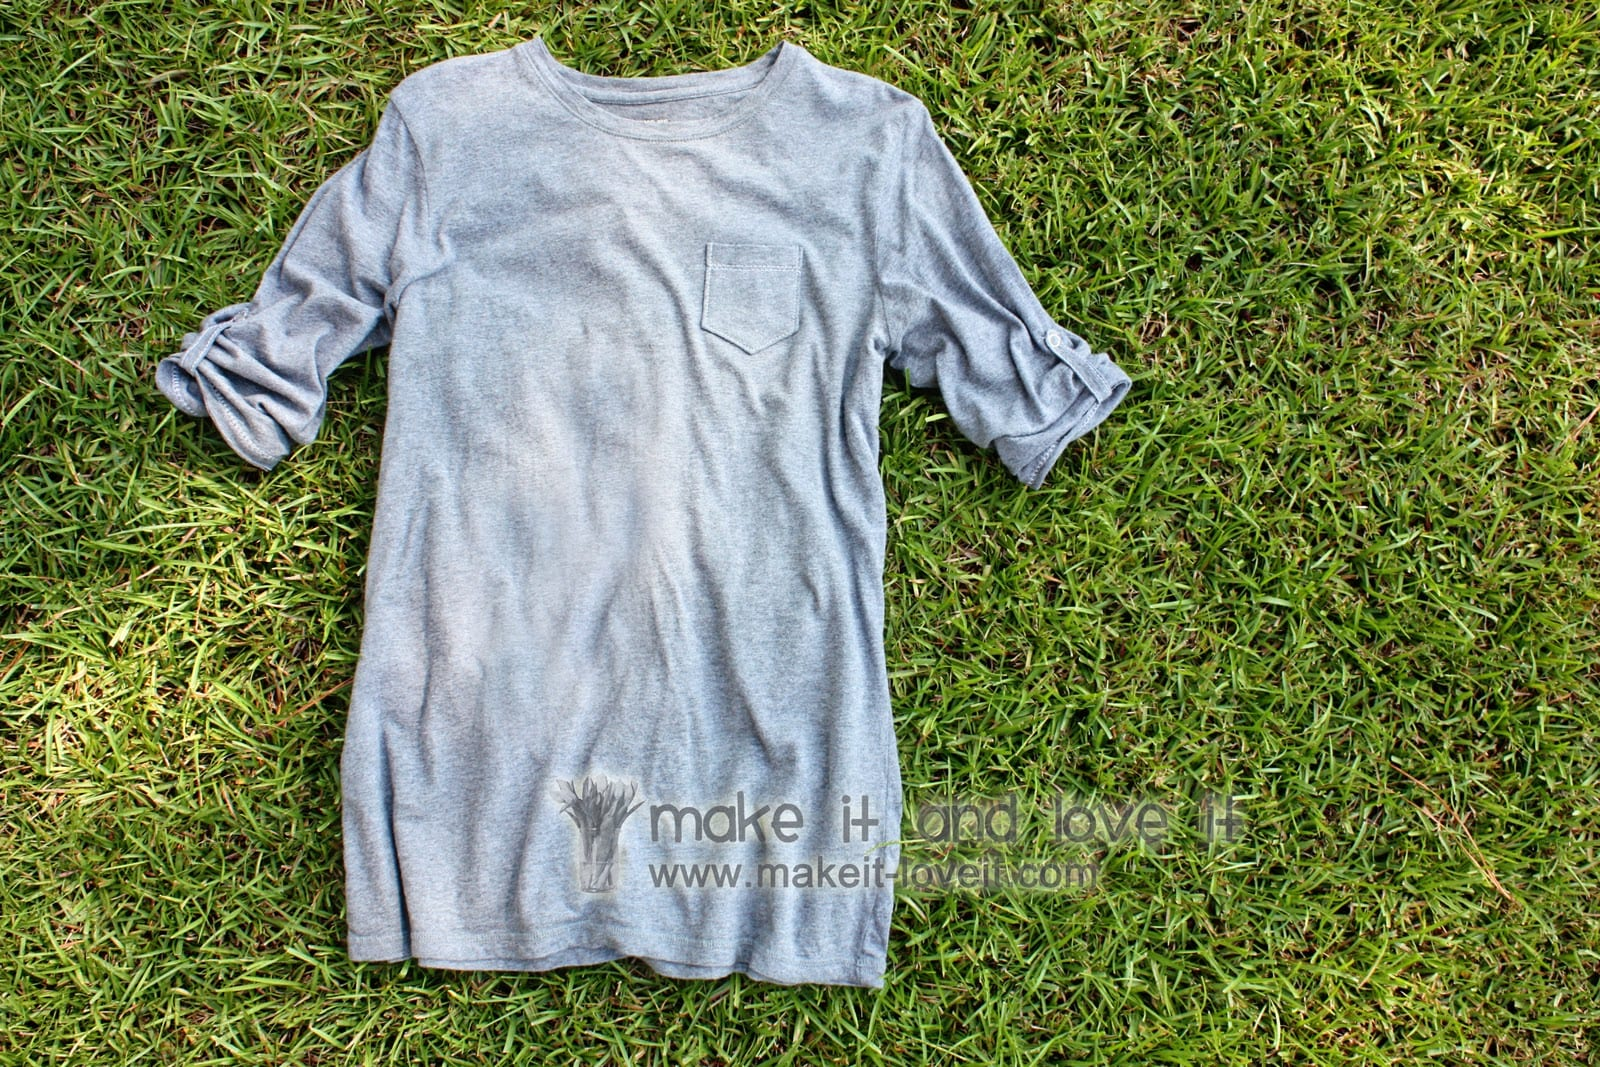 Re-purposing: Women's Long Sleeved Shirt into Short Sleeves……and a new friend!